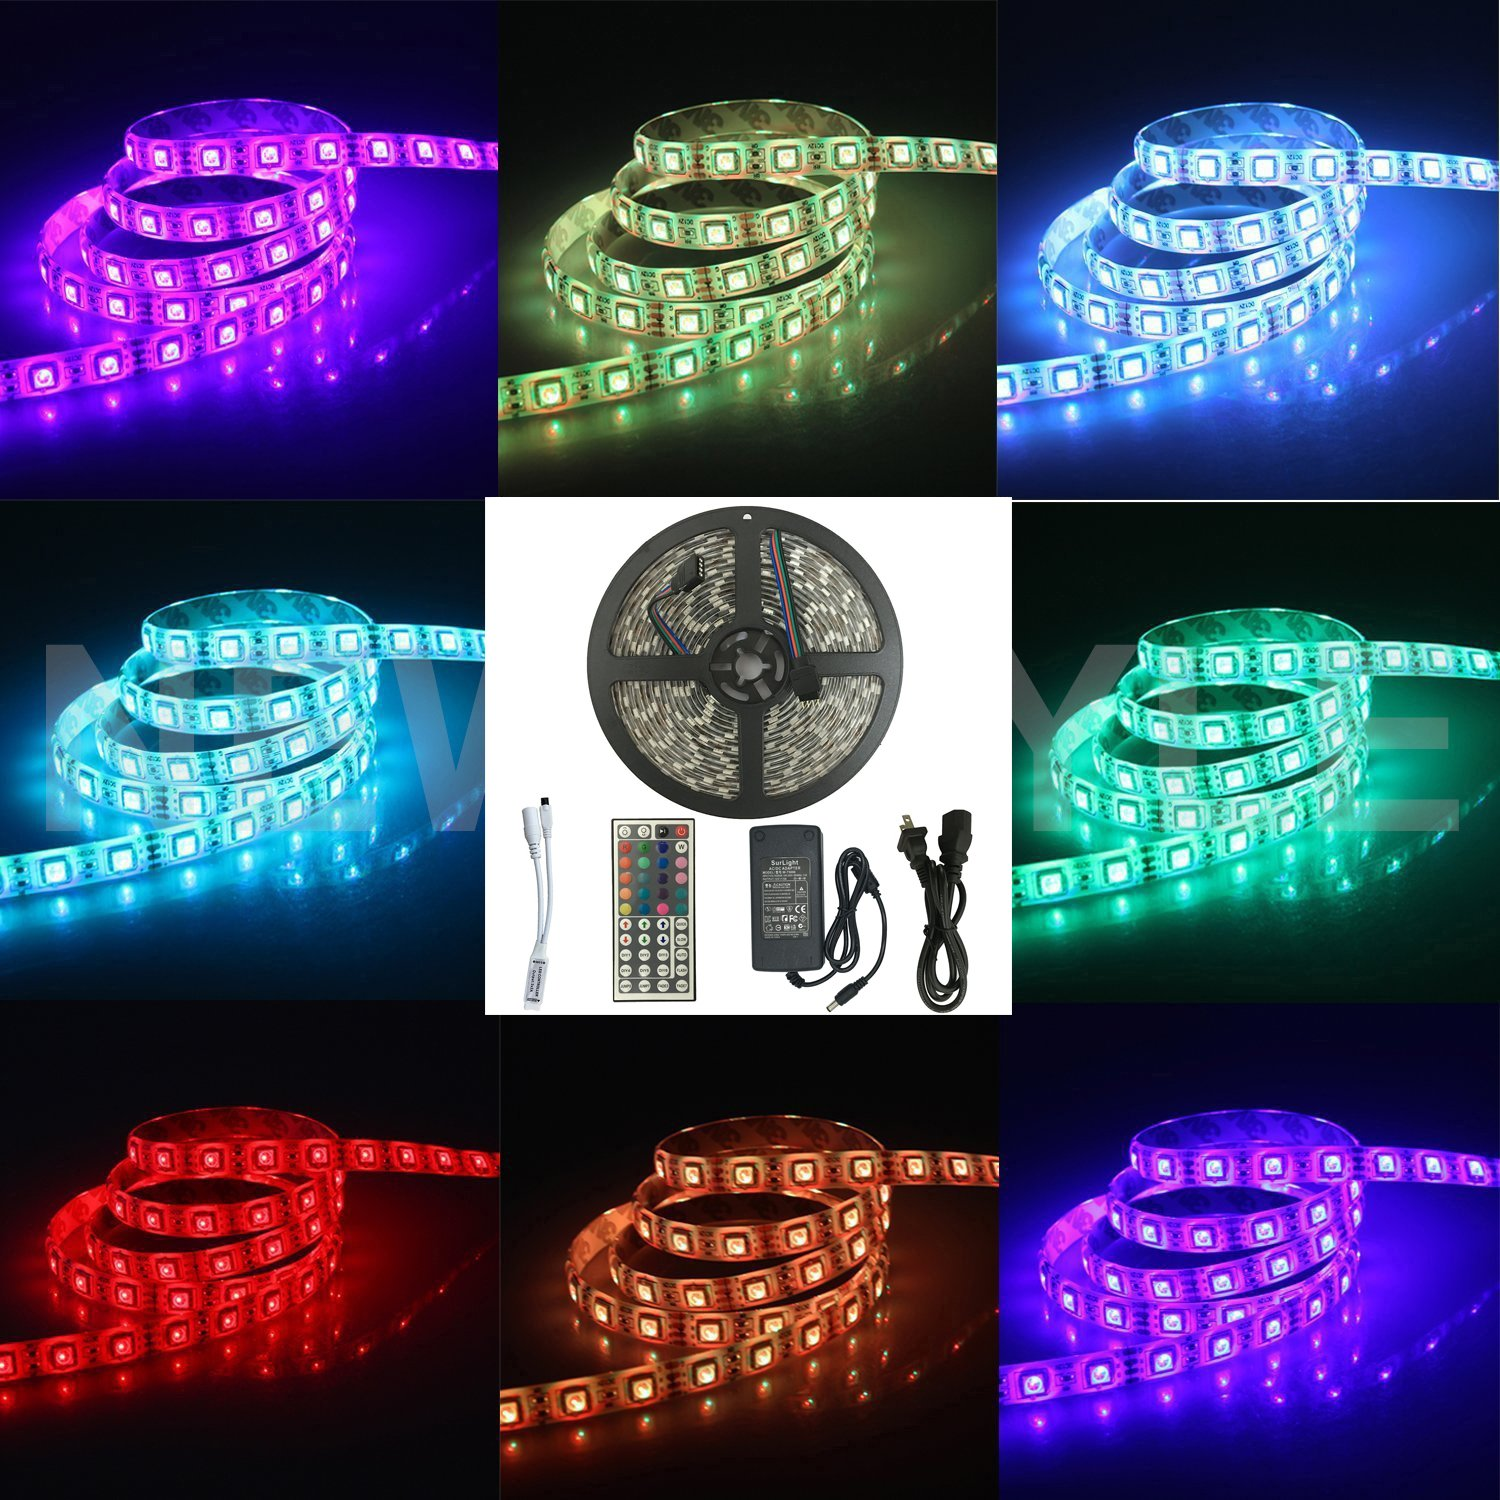 Amazon surlight waterproof 164ft5m 300leds rgb smd5050 amazon surlight waterproof 164ft5m 300leds rgb smd5050 flexible color changing light strip kit with 44 key ir remote control 12v 5a power supply aloadofball